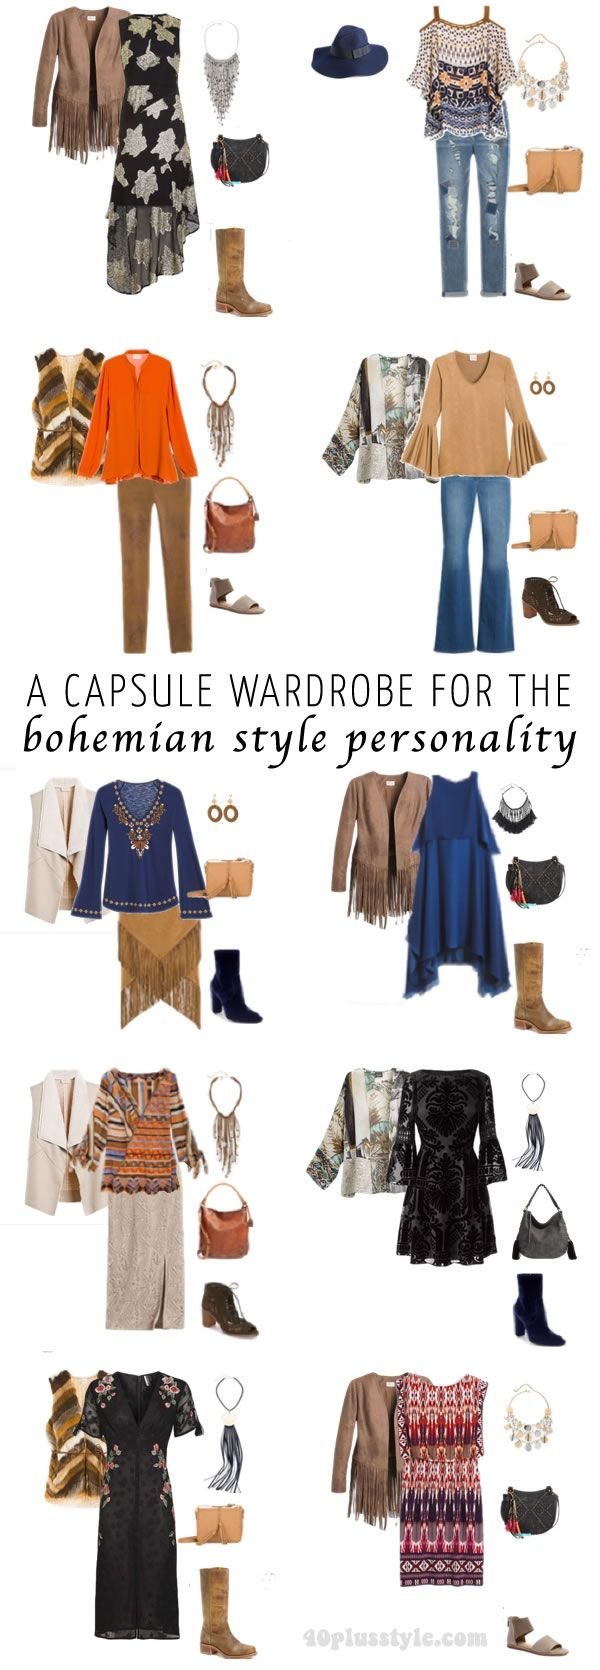 A Capsule Wardrobe For The Bohemian Style Personality Capsula Pinterest Arm Rio C Psula